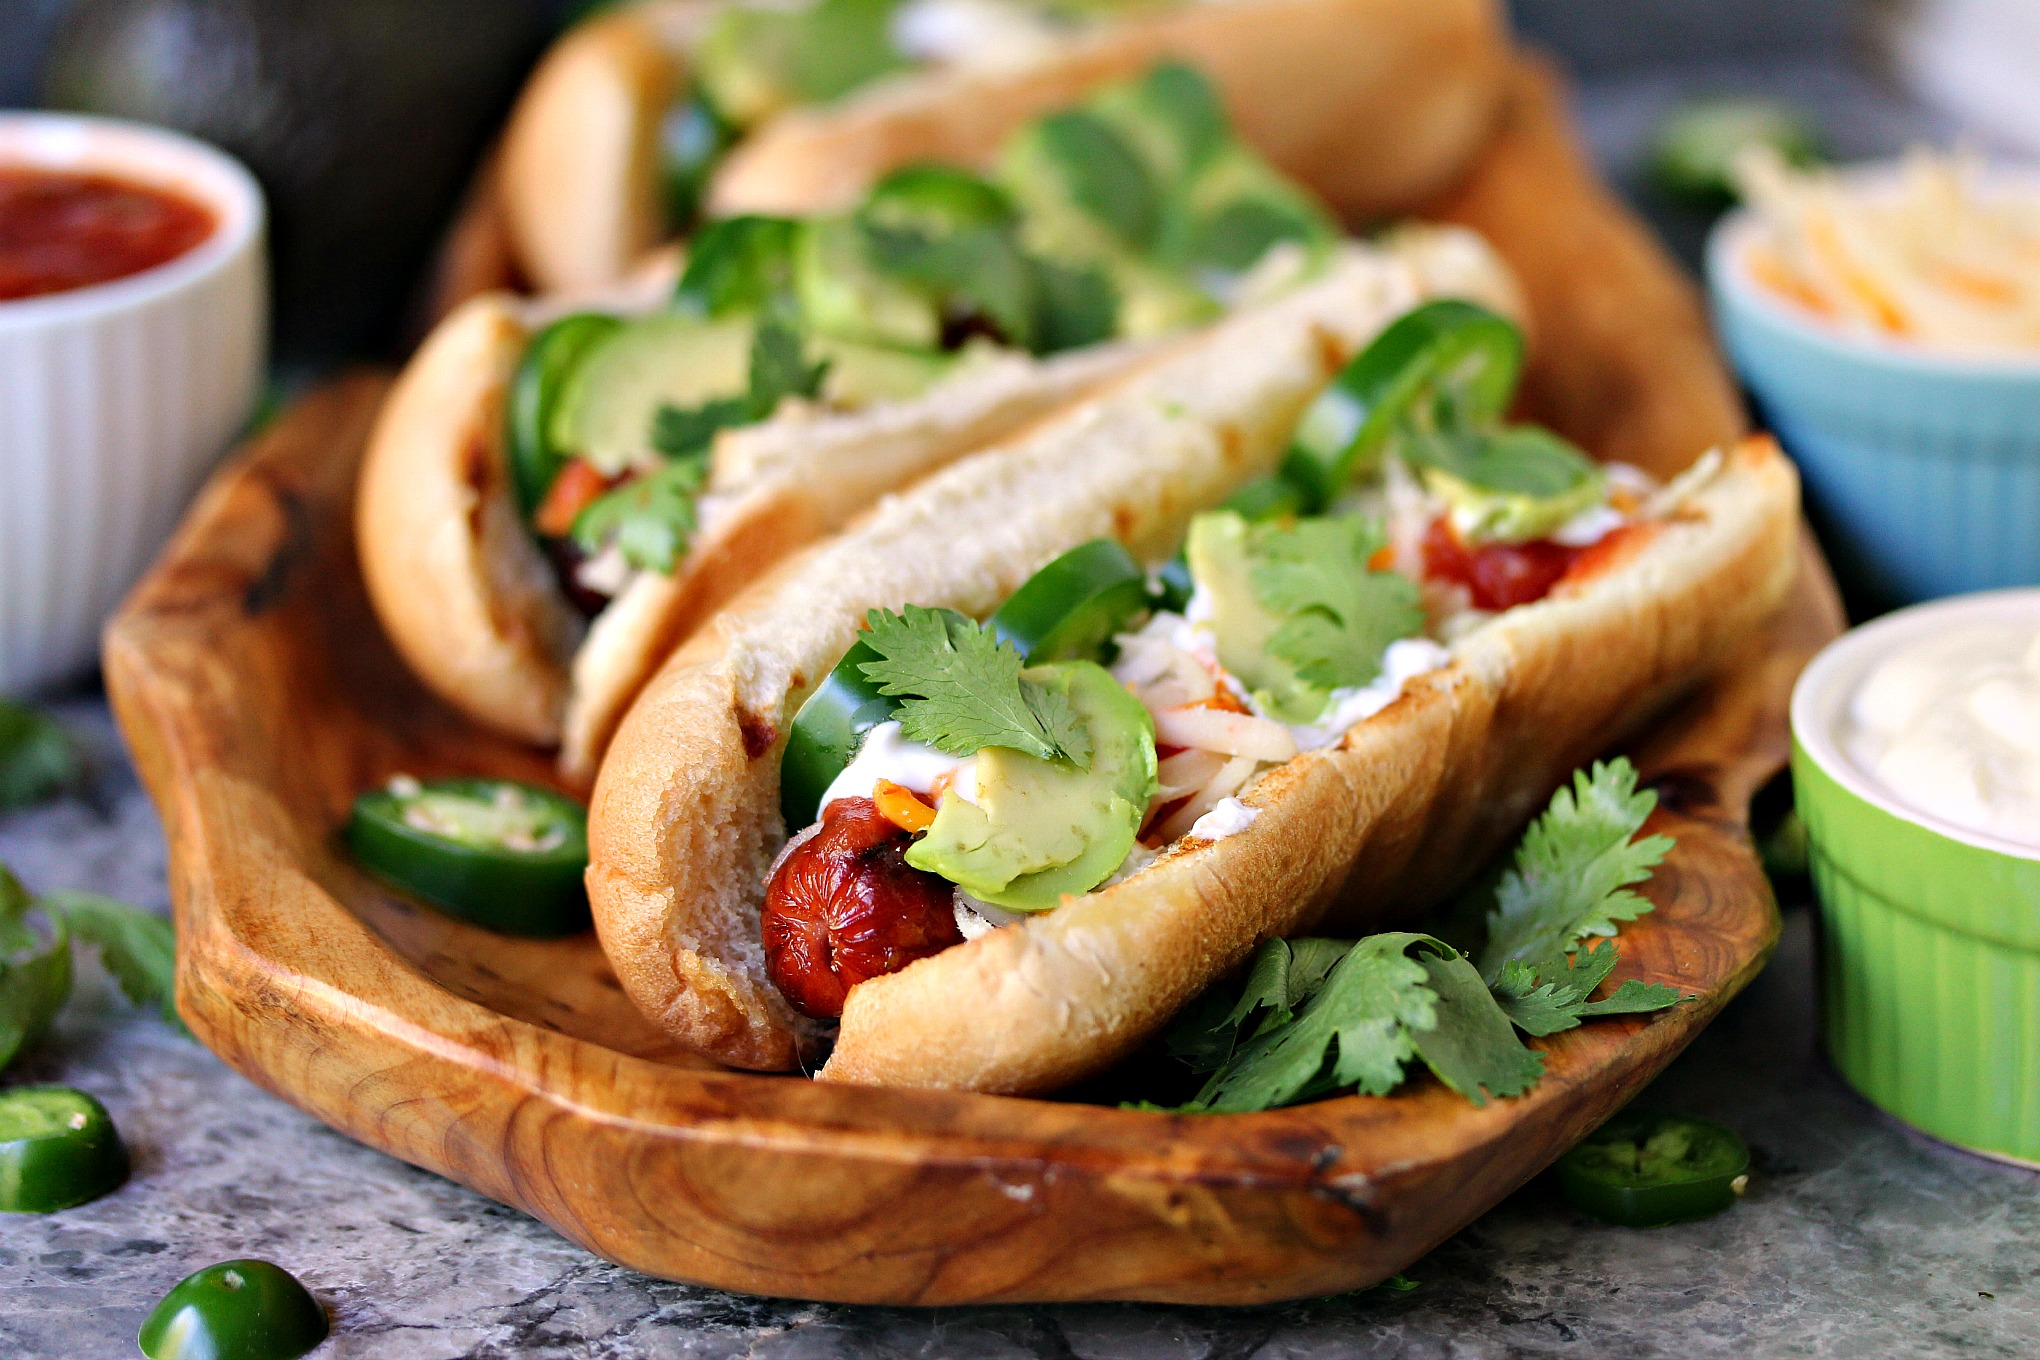 Mexican Hot Dogs from cravingsofalunatic.com- These hot dogs are grilled to perfection, then topped with jalapeno peppers, salsa, cheese, sour cream and avocados. This recipe is a real crowd pleaser. (@CravingsLunatic)